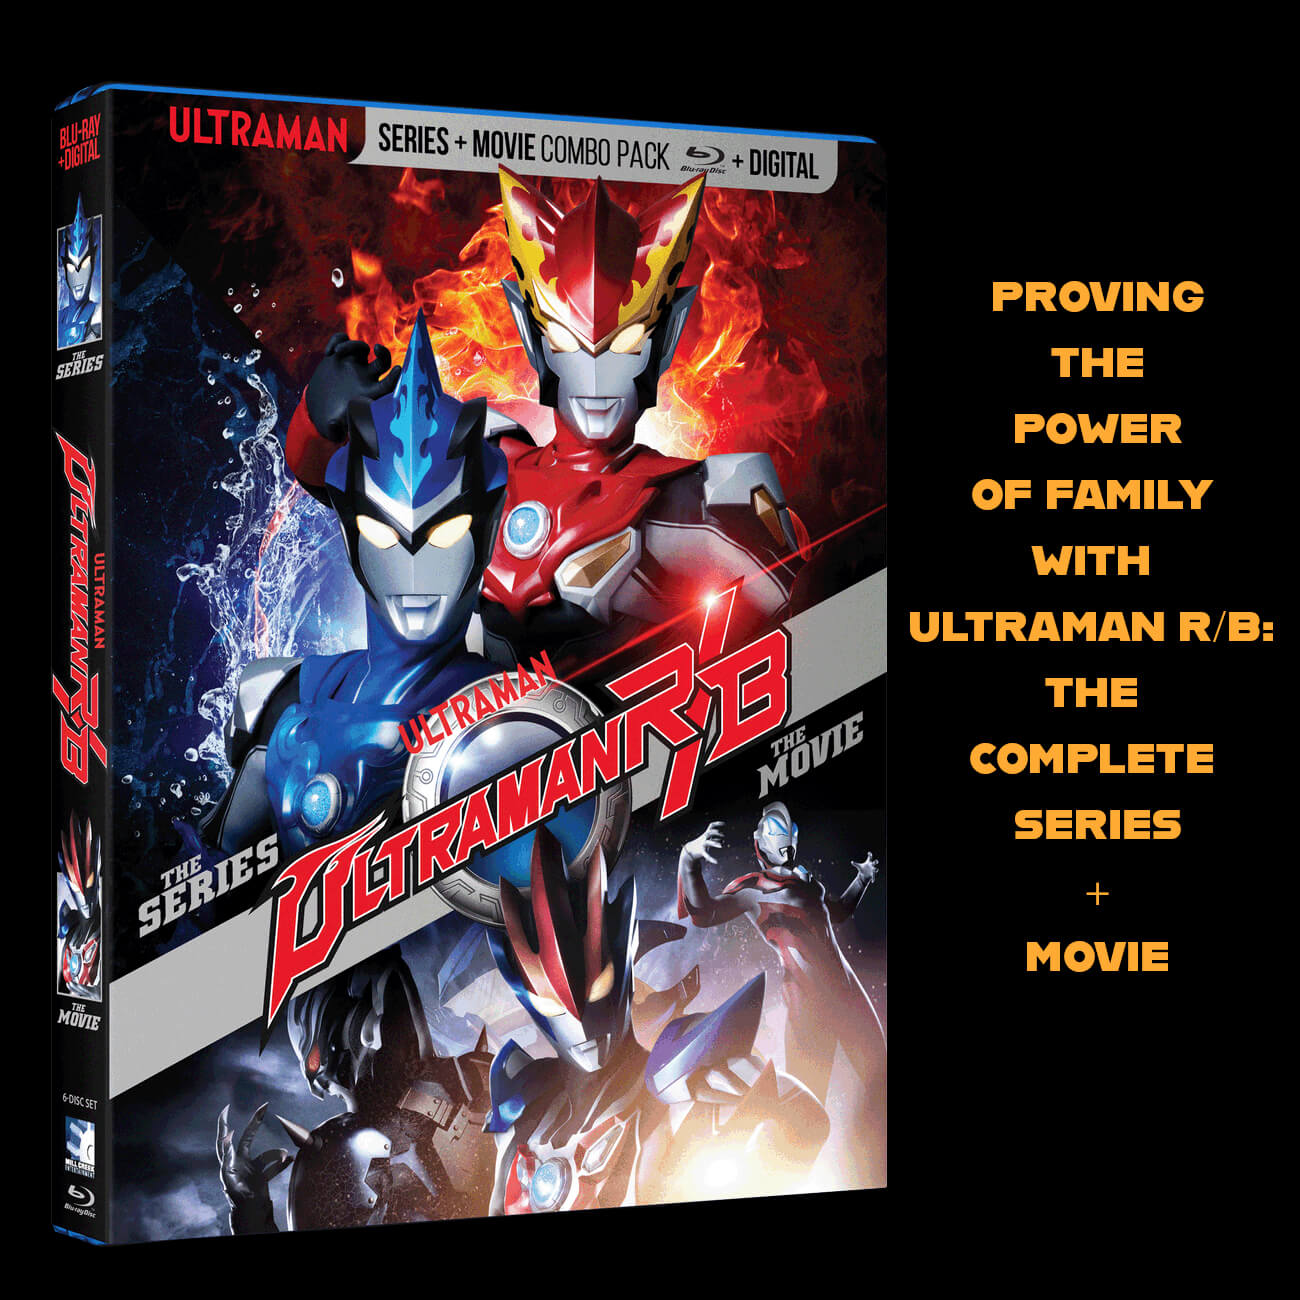 PROVING THE POWER OF FAMILY WITH  ULTRAMAN R/B:THE COMPLETE SERIES+MOVIE